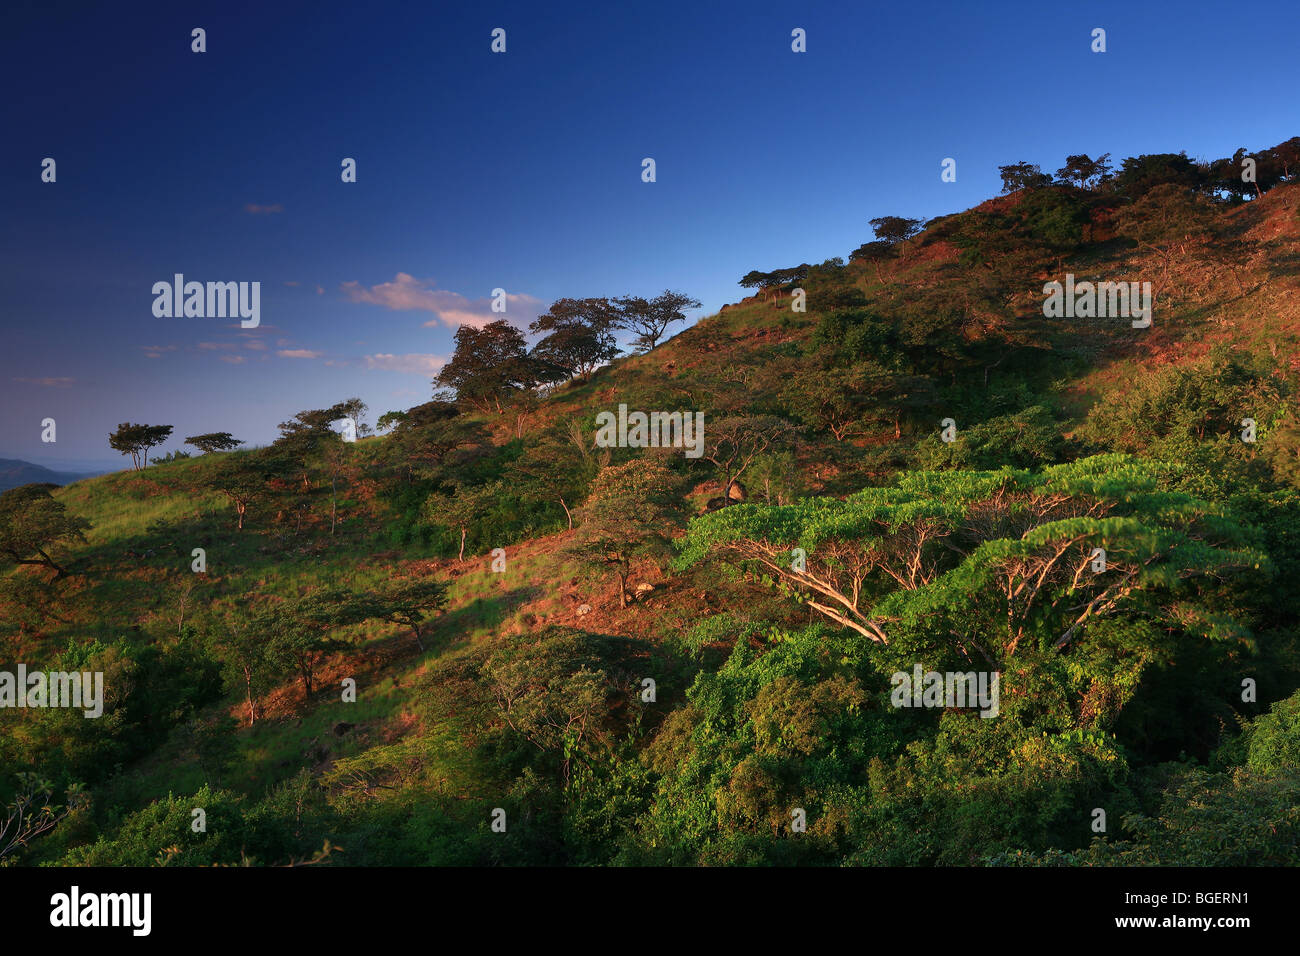 First light on a hill above Ola in Cocle province, Republic of Panama. - Stock Image